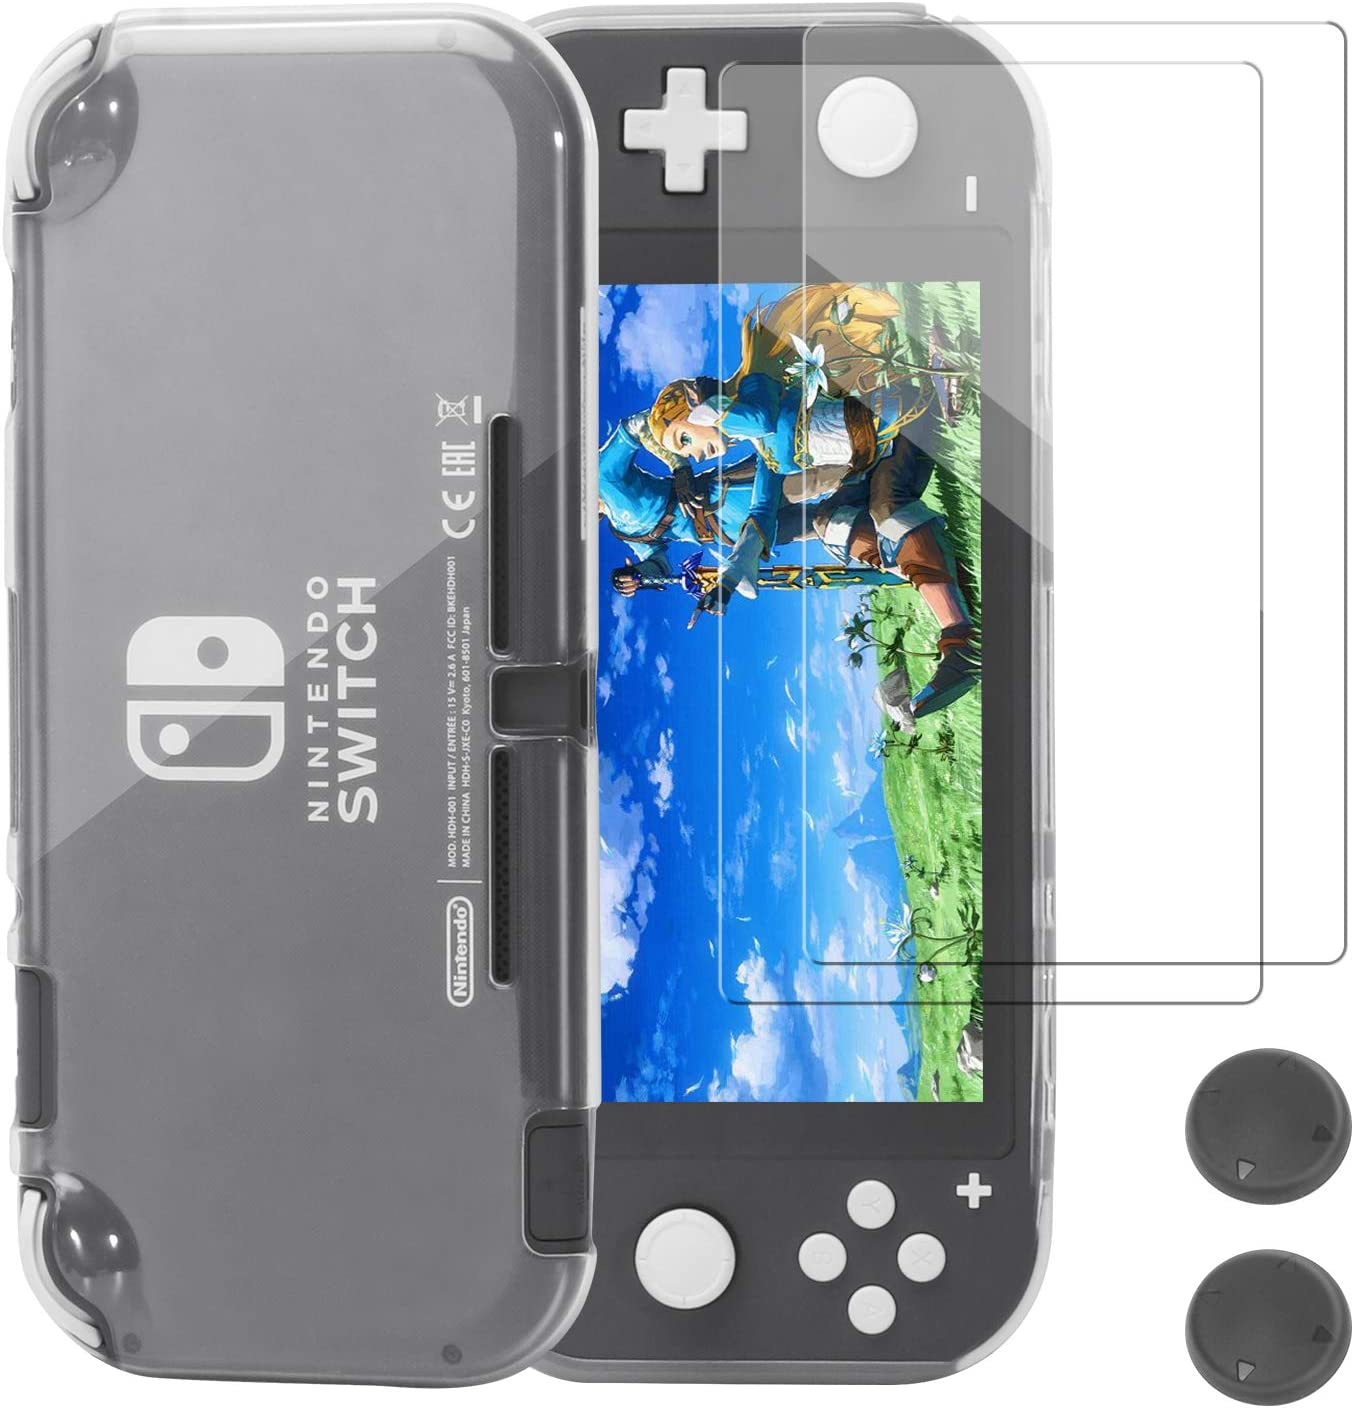 Protective Case for Nintendo Switch Lite, Hommand Comfort TPU Crystal Cover Case With Tempered Glass Screen Protector & Thumb Grip Caps for Nintendo Switch Lite Console 2019